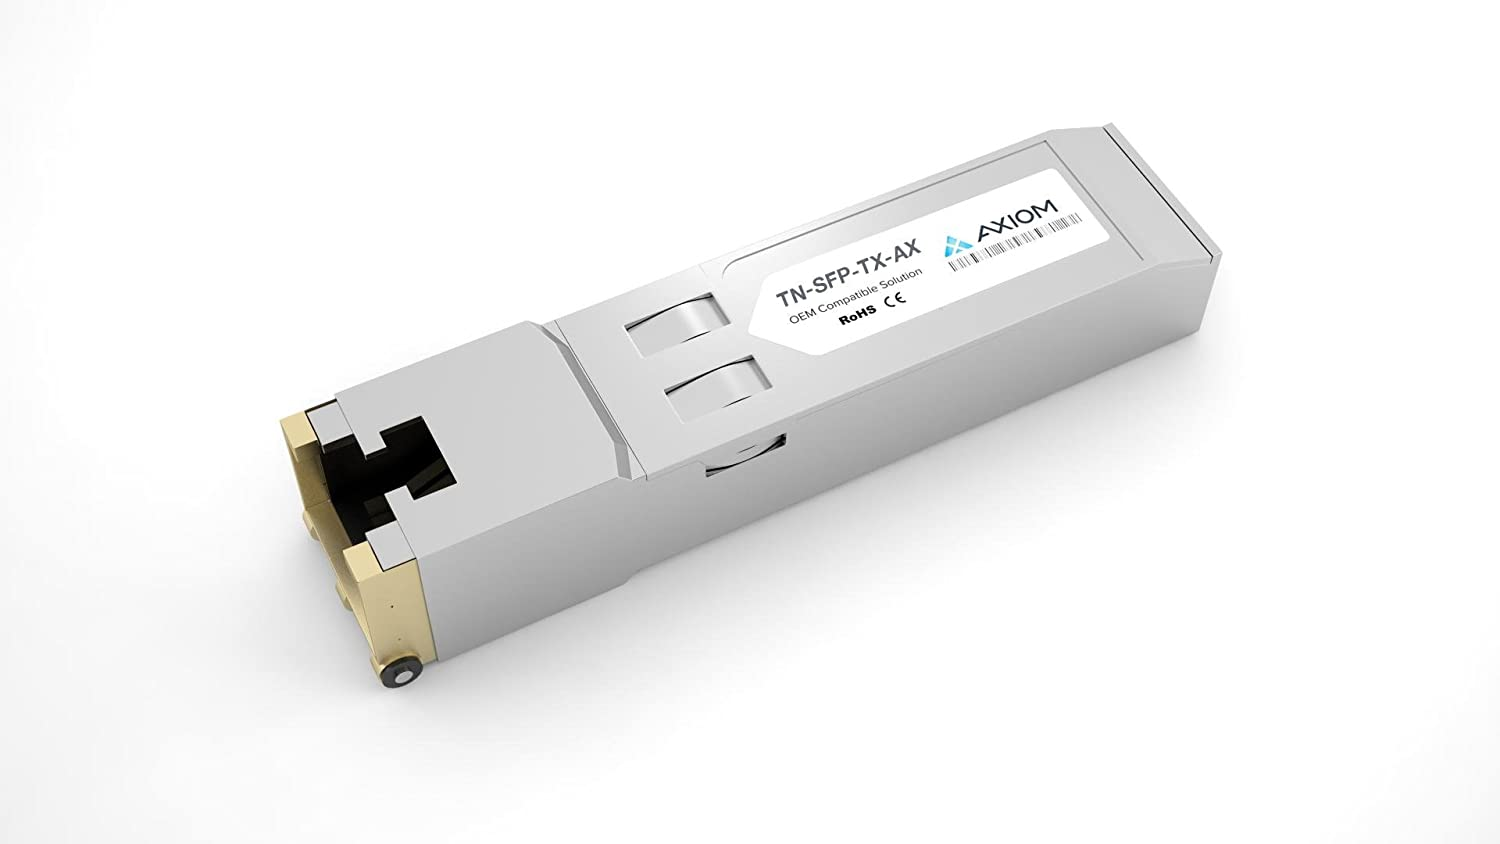 Tn-sfp-tx Axiom Memory Solution,lc Axiom 1000base-t Sfp Transceiver for Transition Networks